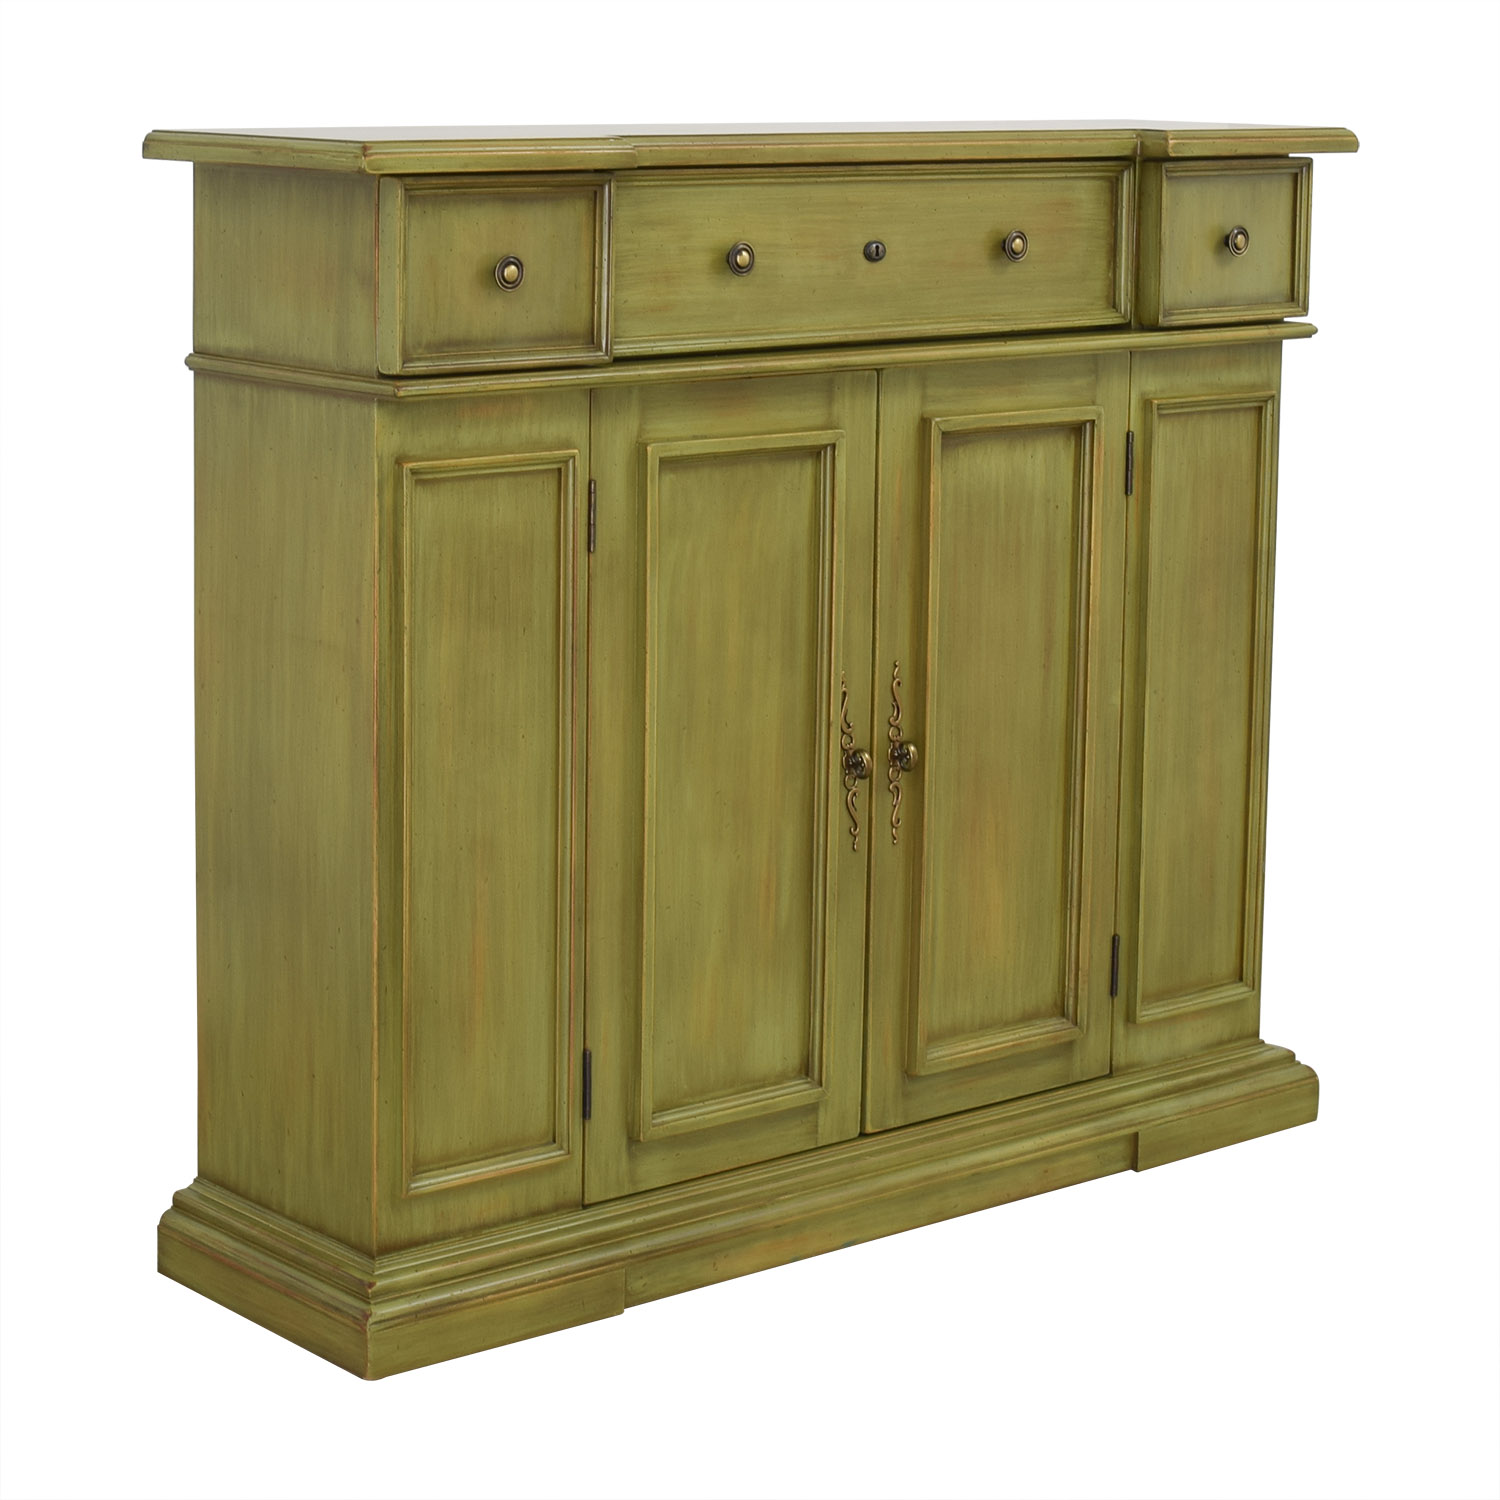 Breakfront Breakfront Lime Green Cabinet With Storage nj